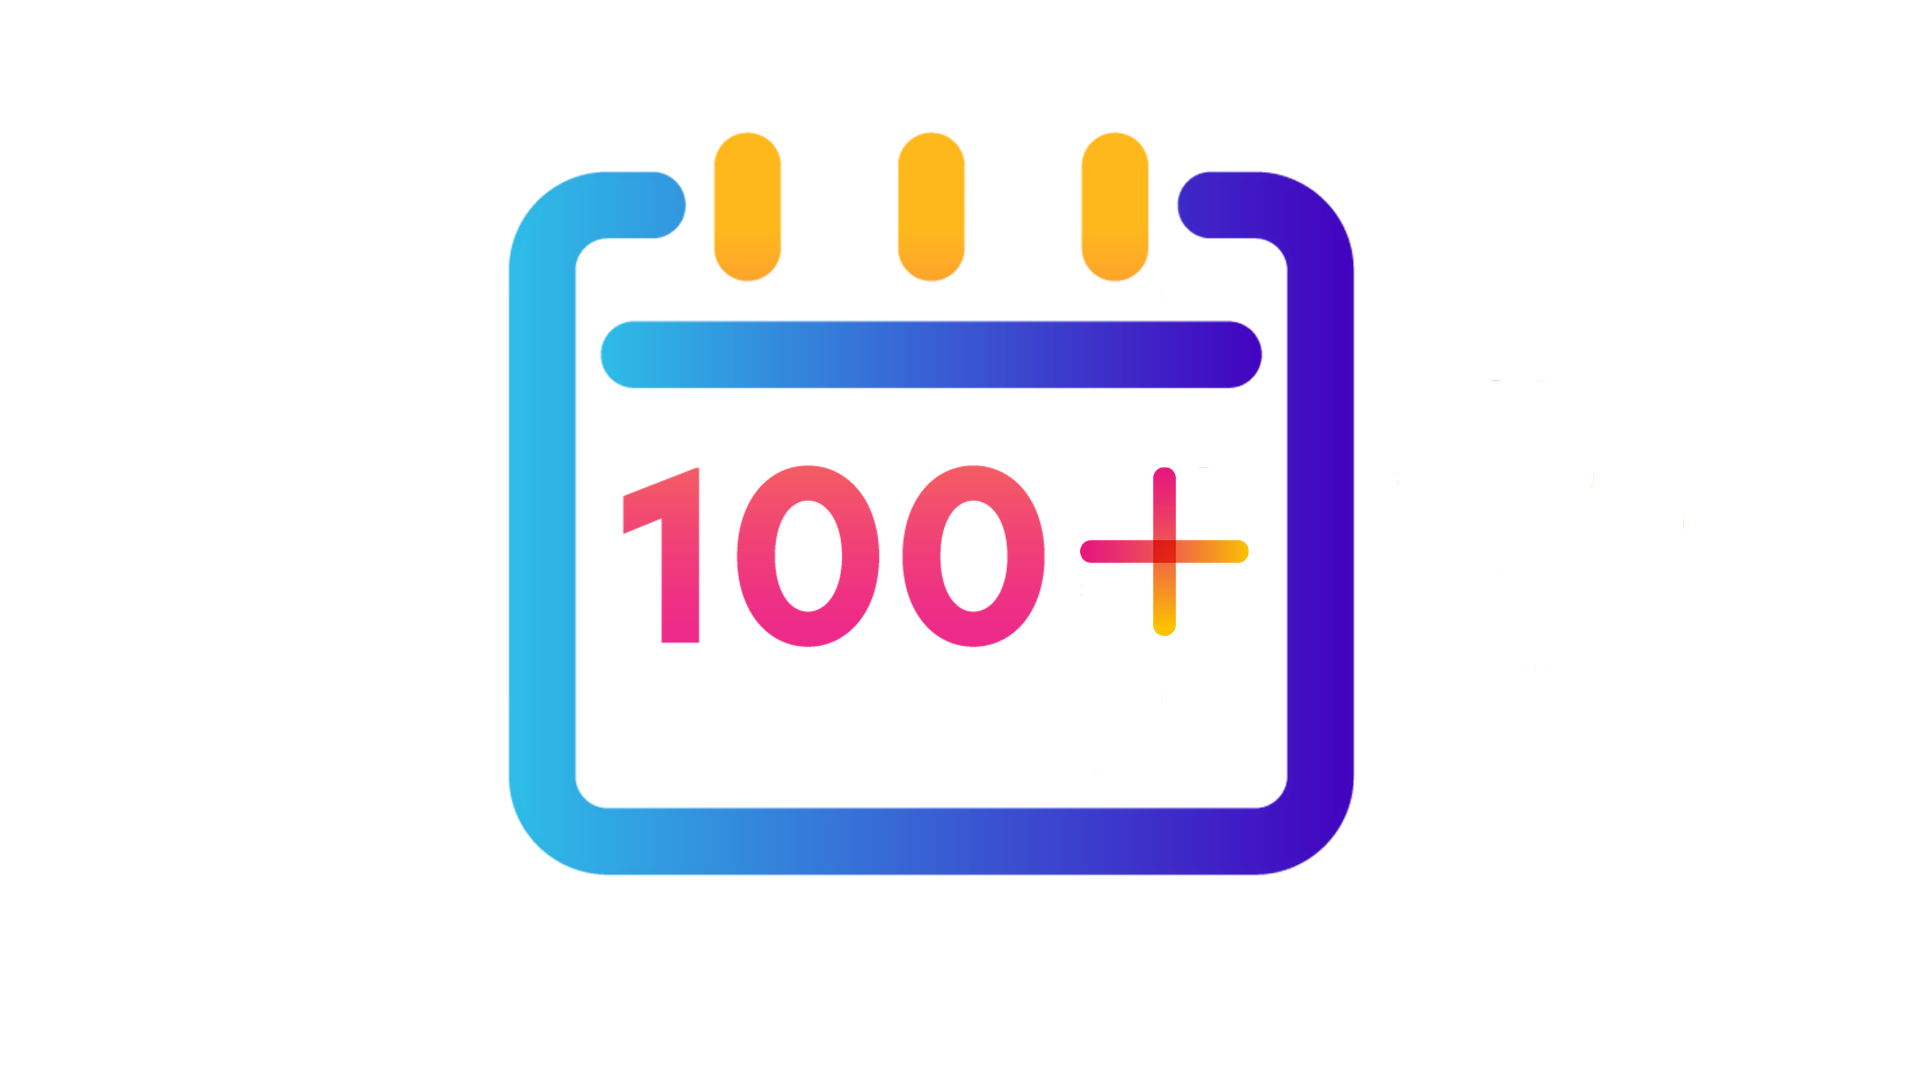 calendar icon with '100' written in the middle and 'plus' symbol